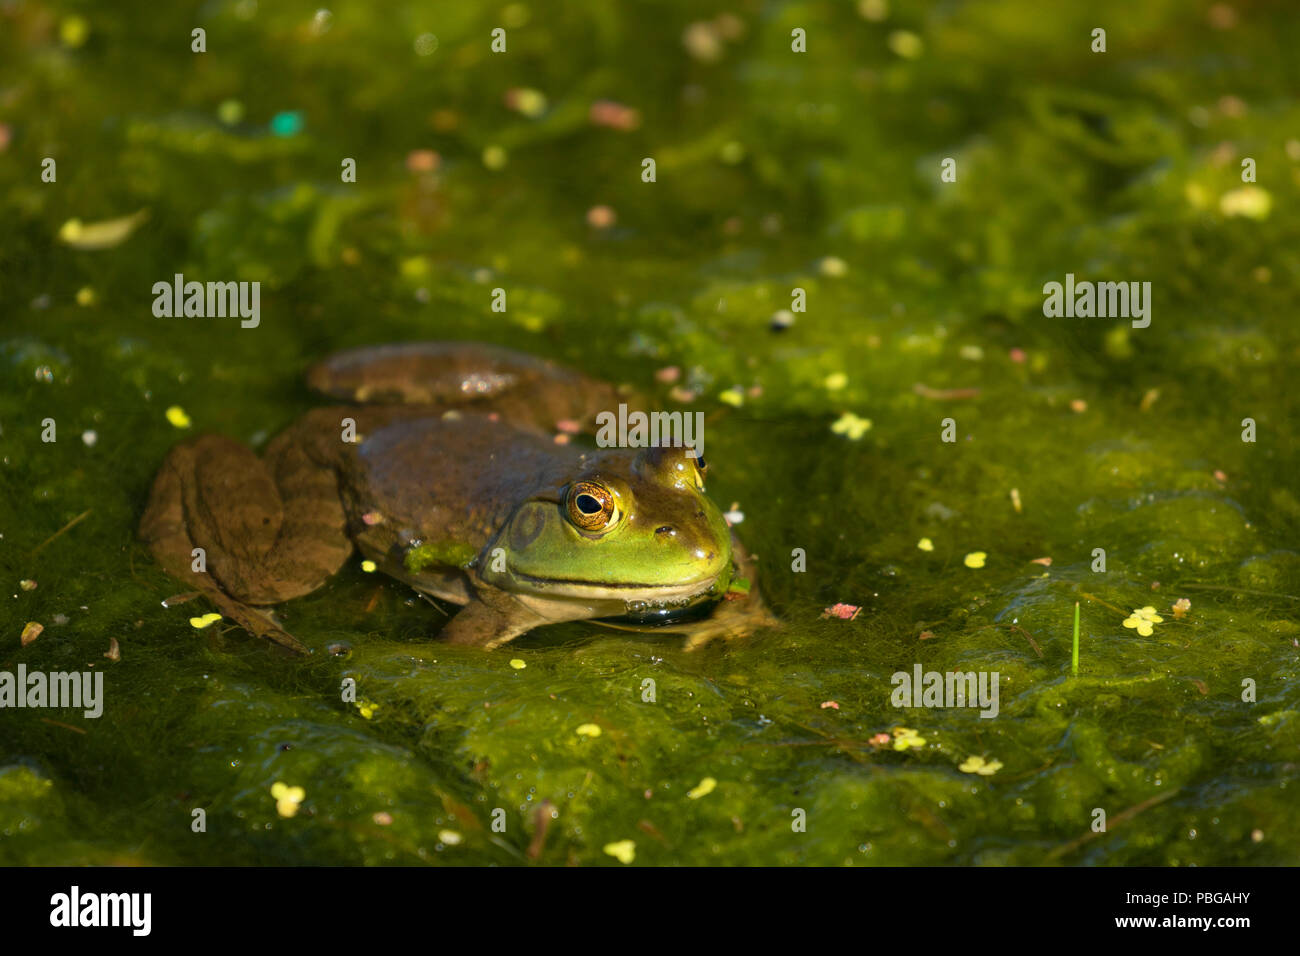 Frog, Hagerman Wildlife Management Area, Idaho - Stock Image